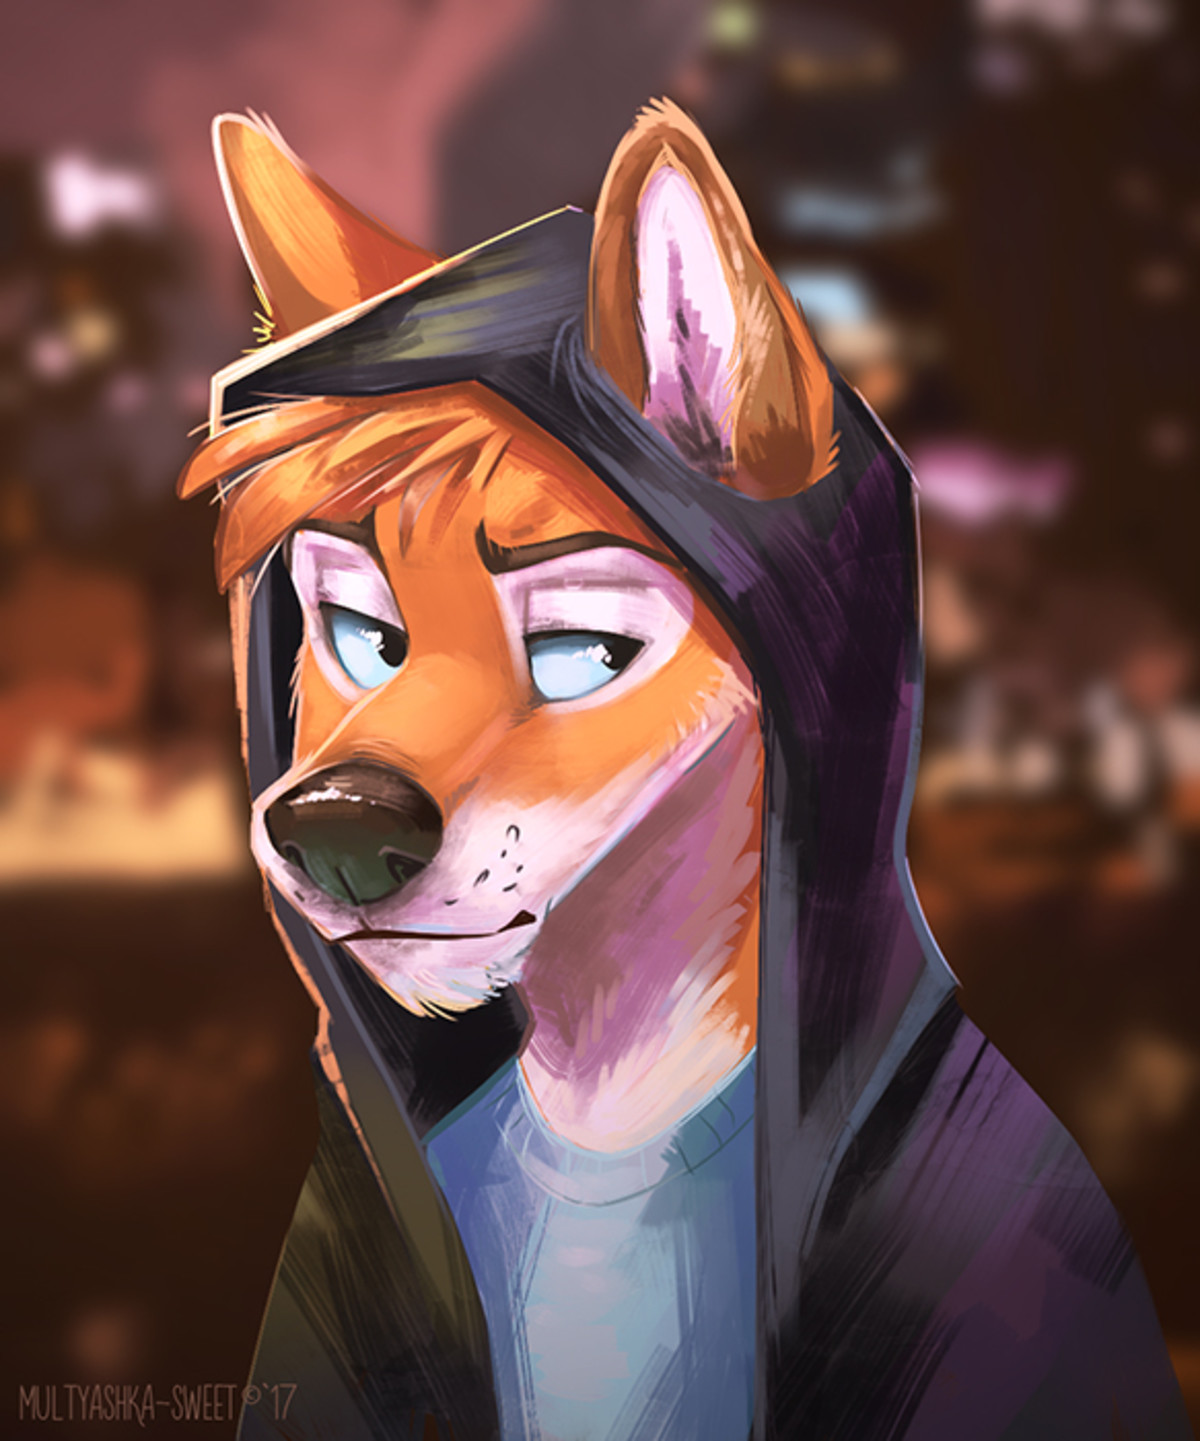 Multyashka-Sweet . Edition 72 of Furry Art You Can Show Your Friends. Today's featured artist is the squeaky-clean Multyashka-sweet, a Russian arti